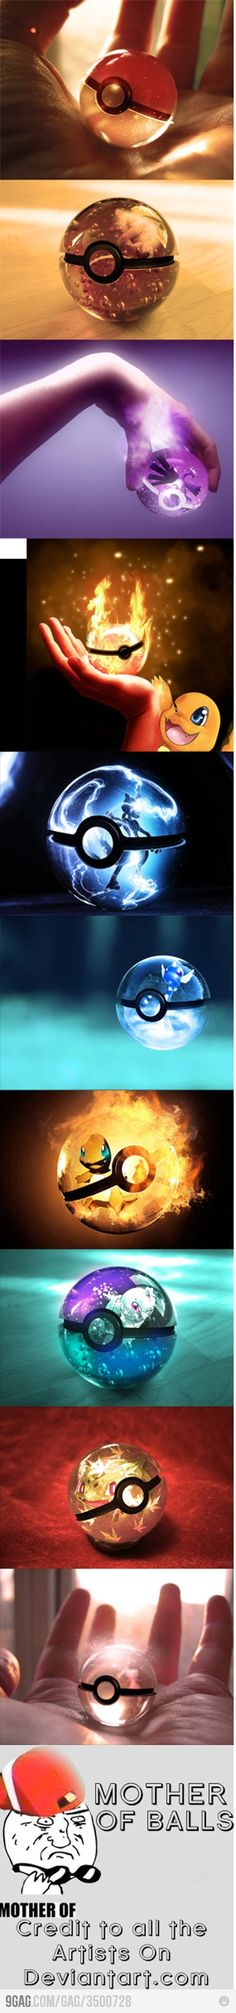 Perfect graphics for a live pokemon movie...